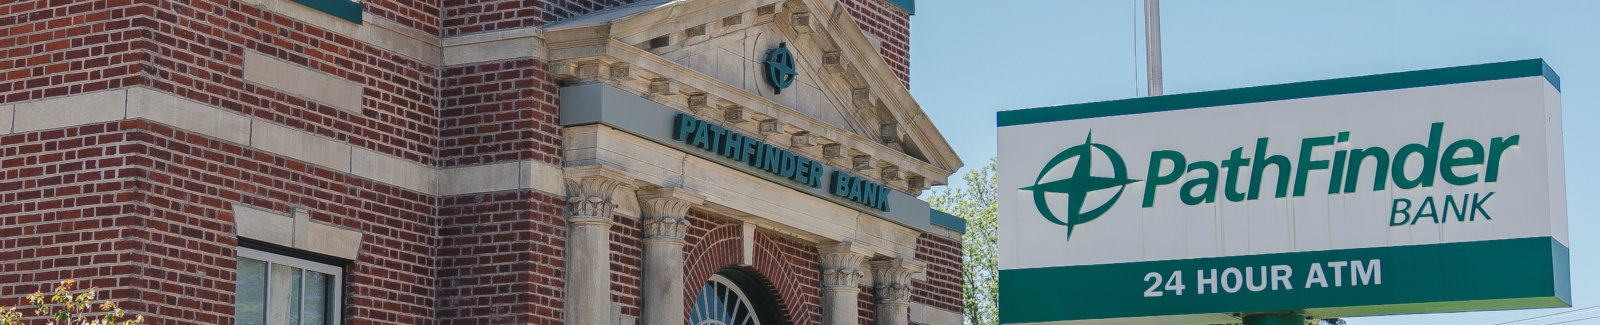 Pathfinder Bank Lacona branch with a branded 24 Hour ATM sign in the front yard.